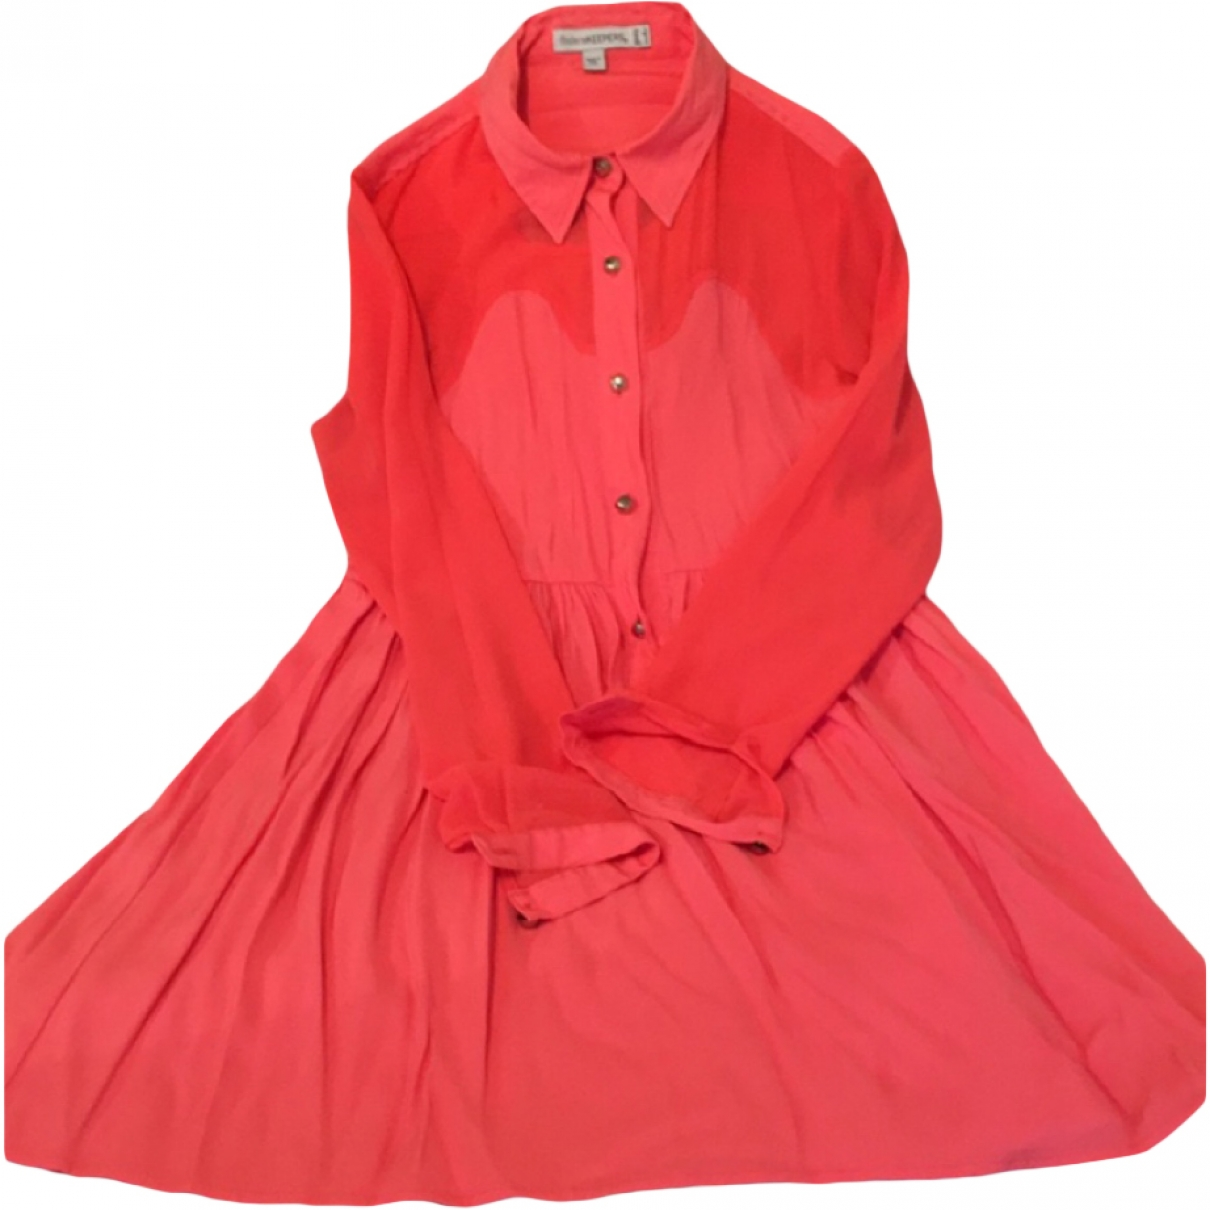 Finders Keepers \N Pink dress for Women 8 UK